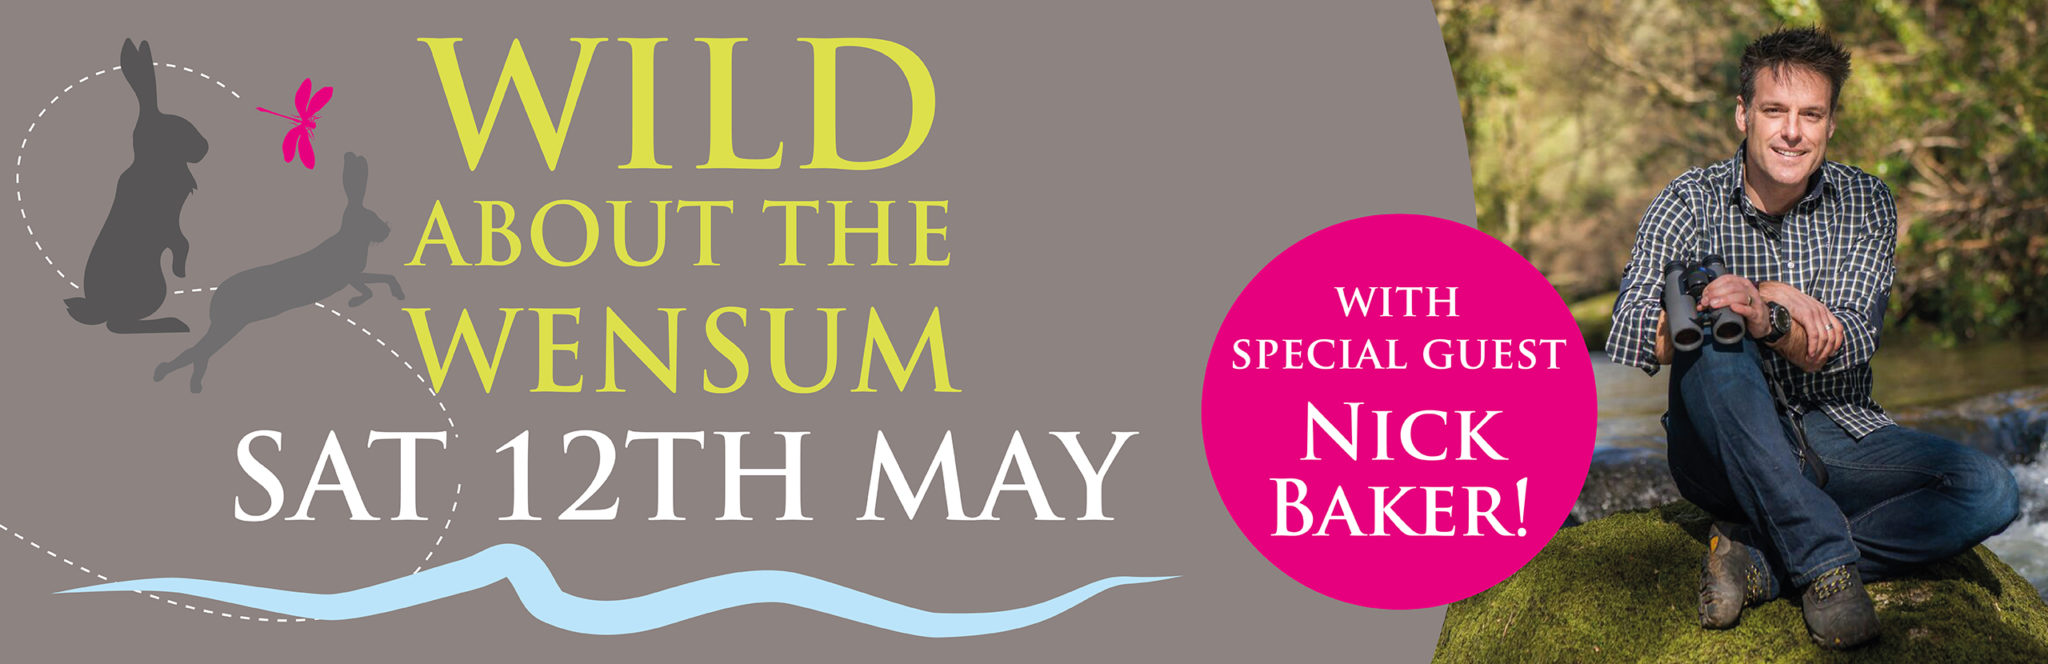 Nick Baker, will be opening Pensthorpe Conservation Trust's annual community event Wild About The Wensum this year.